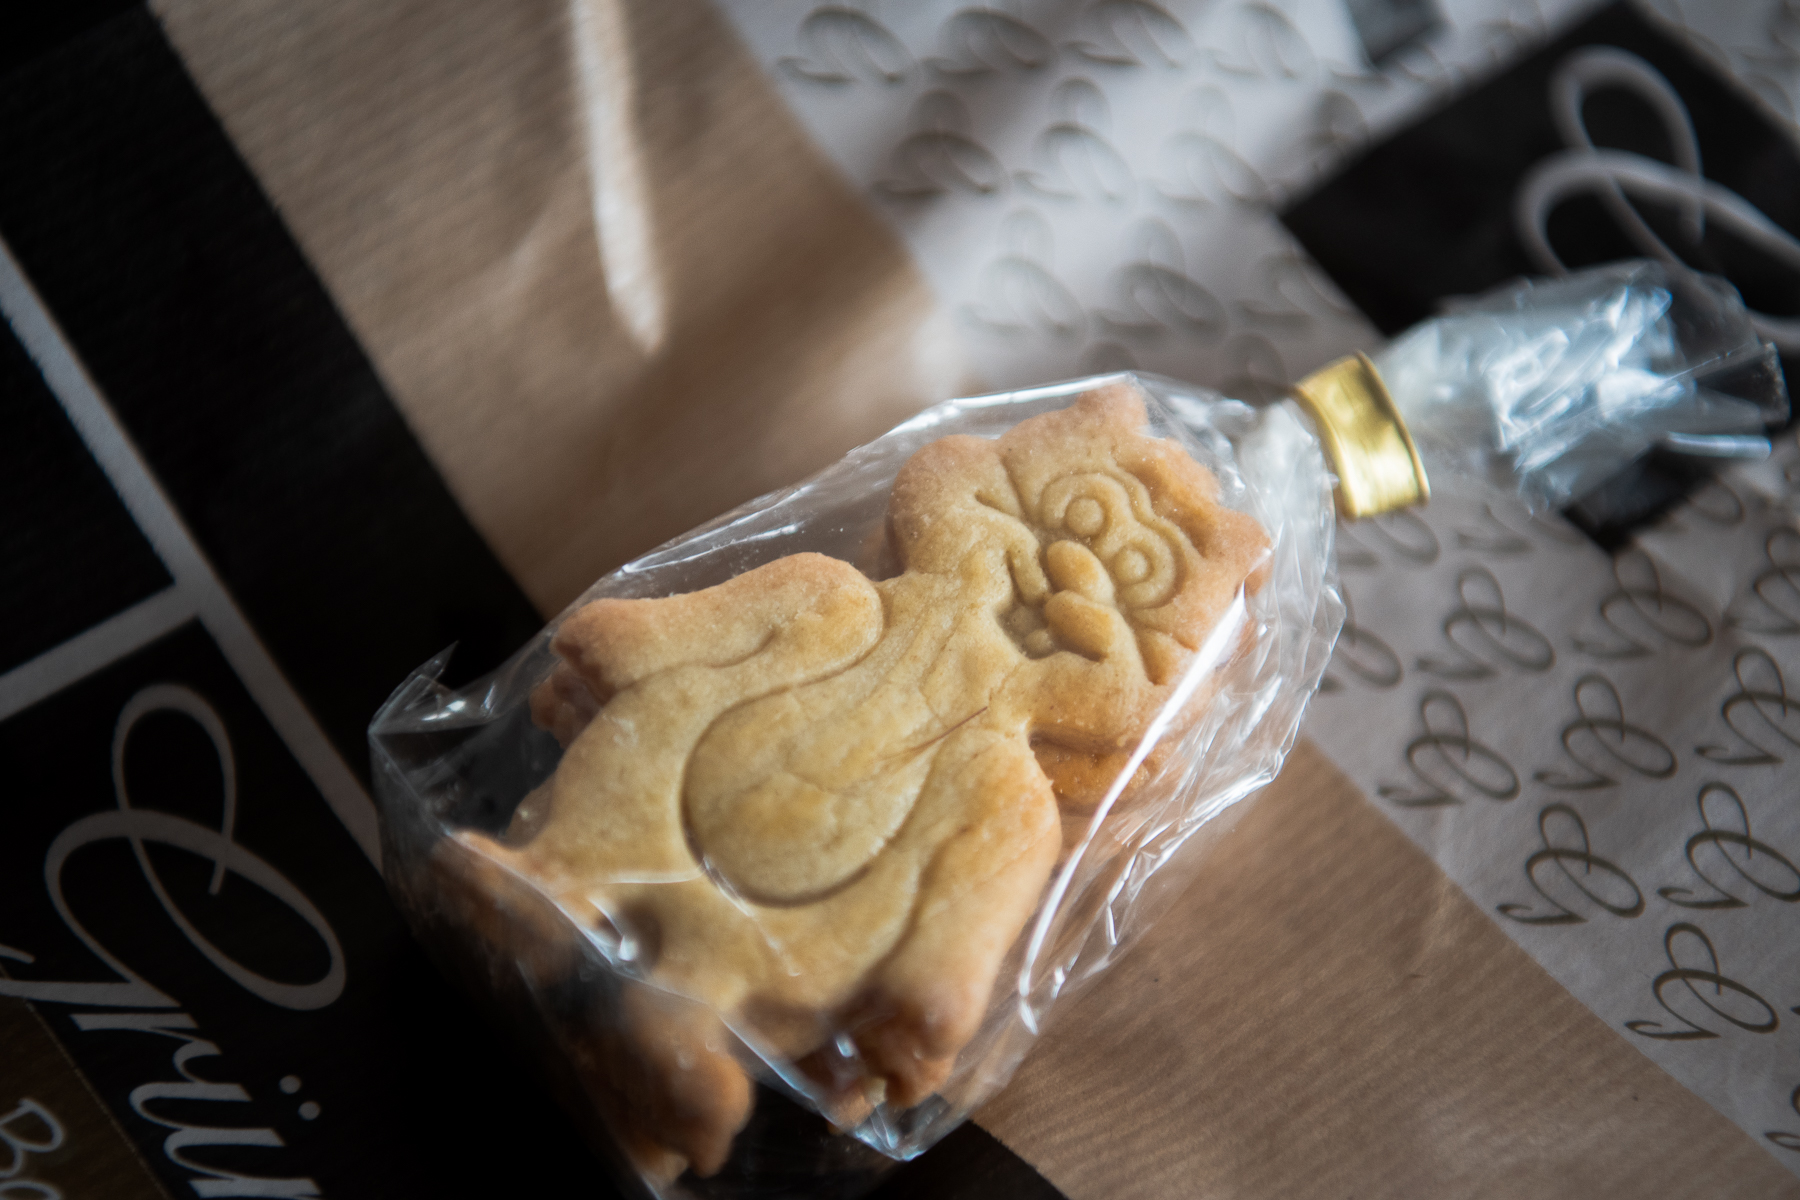 Mom and dad found a sign of the early stages of what would soon develop into the COVID-19 pandemic at a local bakery. These cookies in hamster shape are one baker's response to the onset of panic buying, which in German is called Hamsterkäufe (hamster purchases). Norddeich, Germany, March 5, 2020.